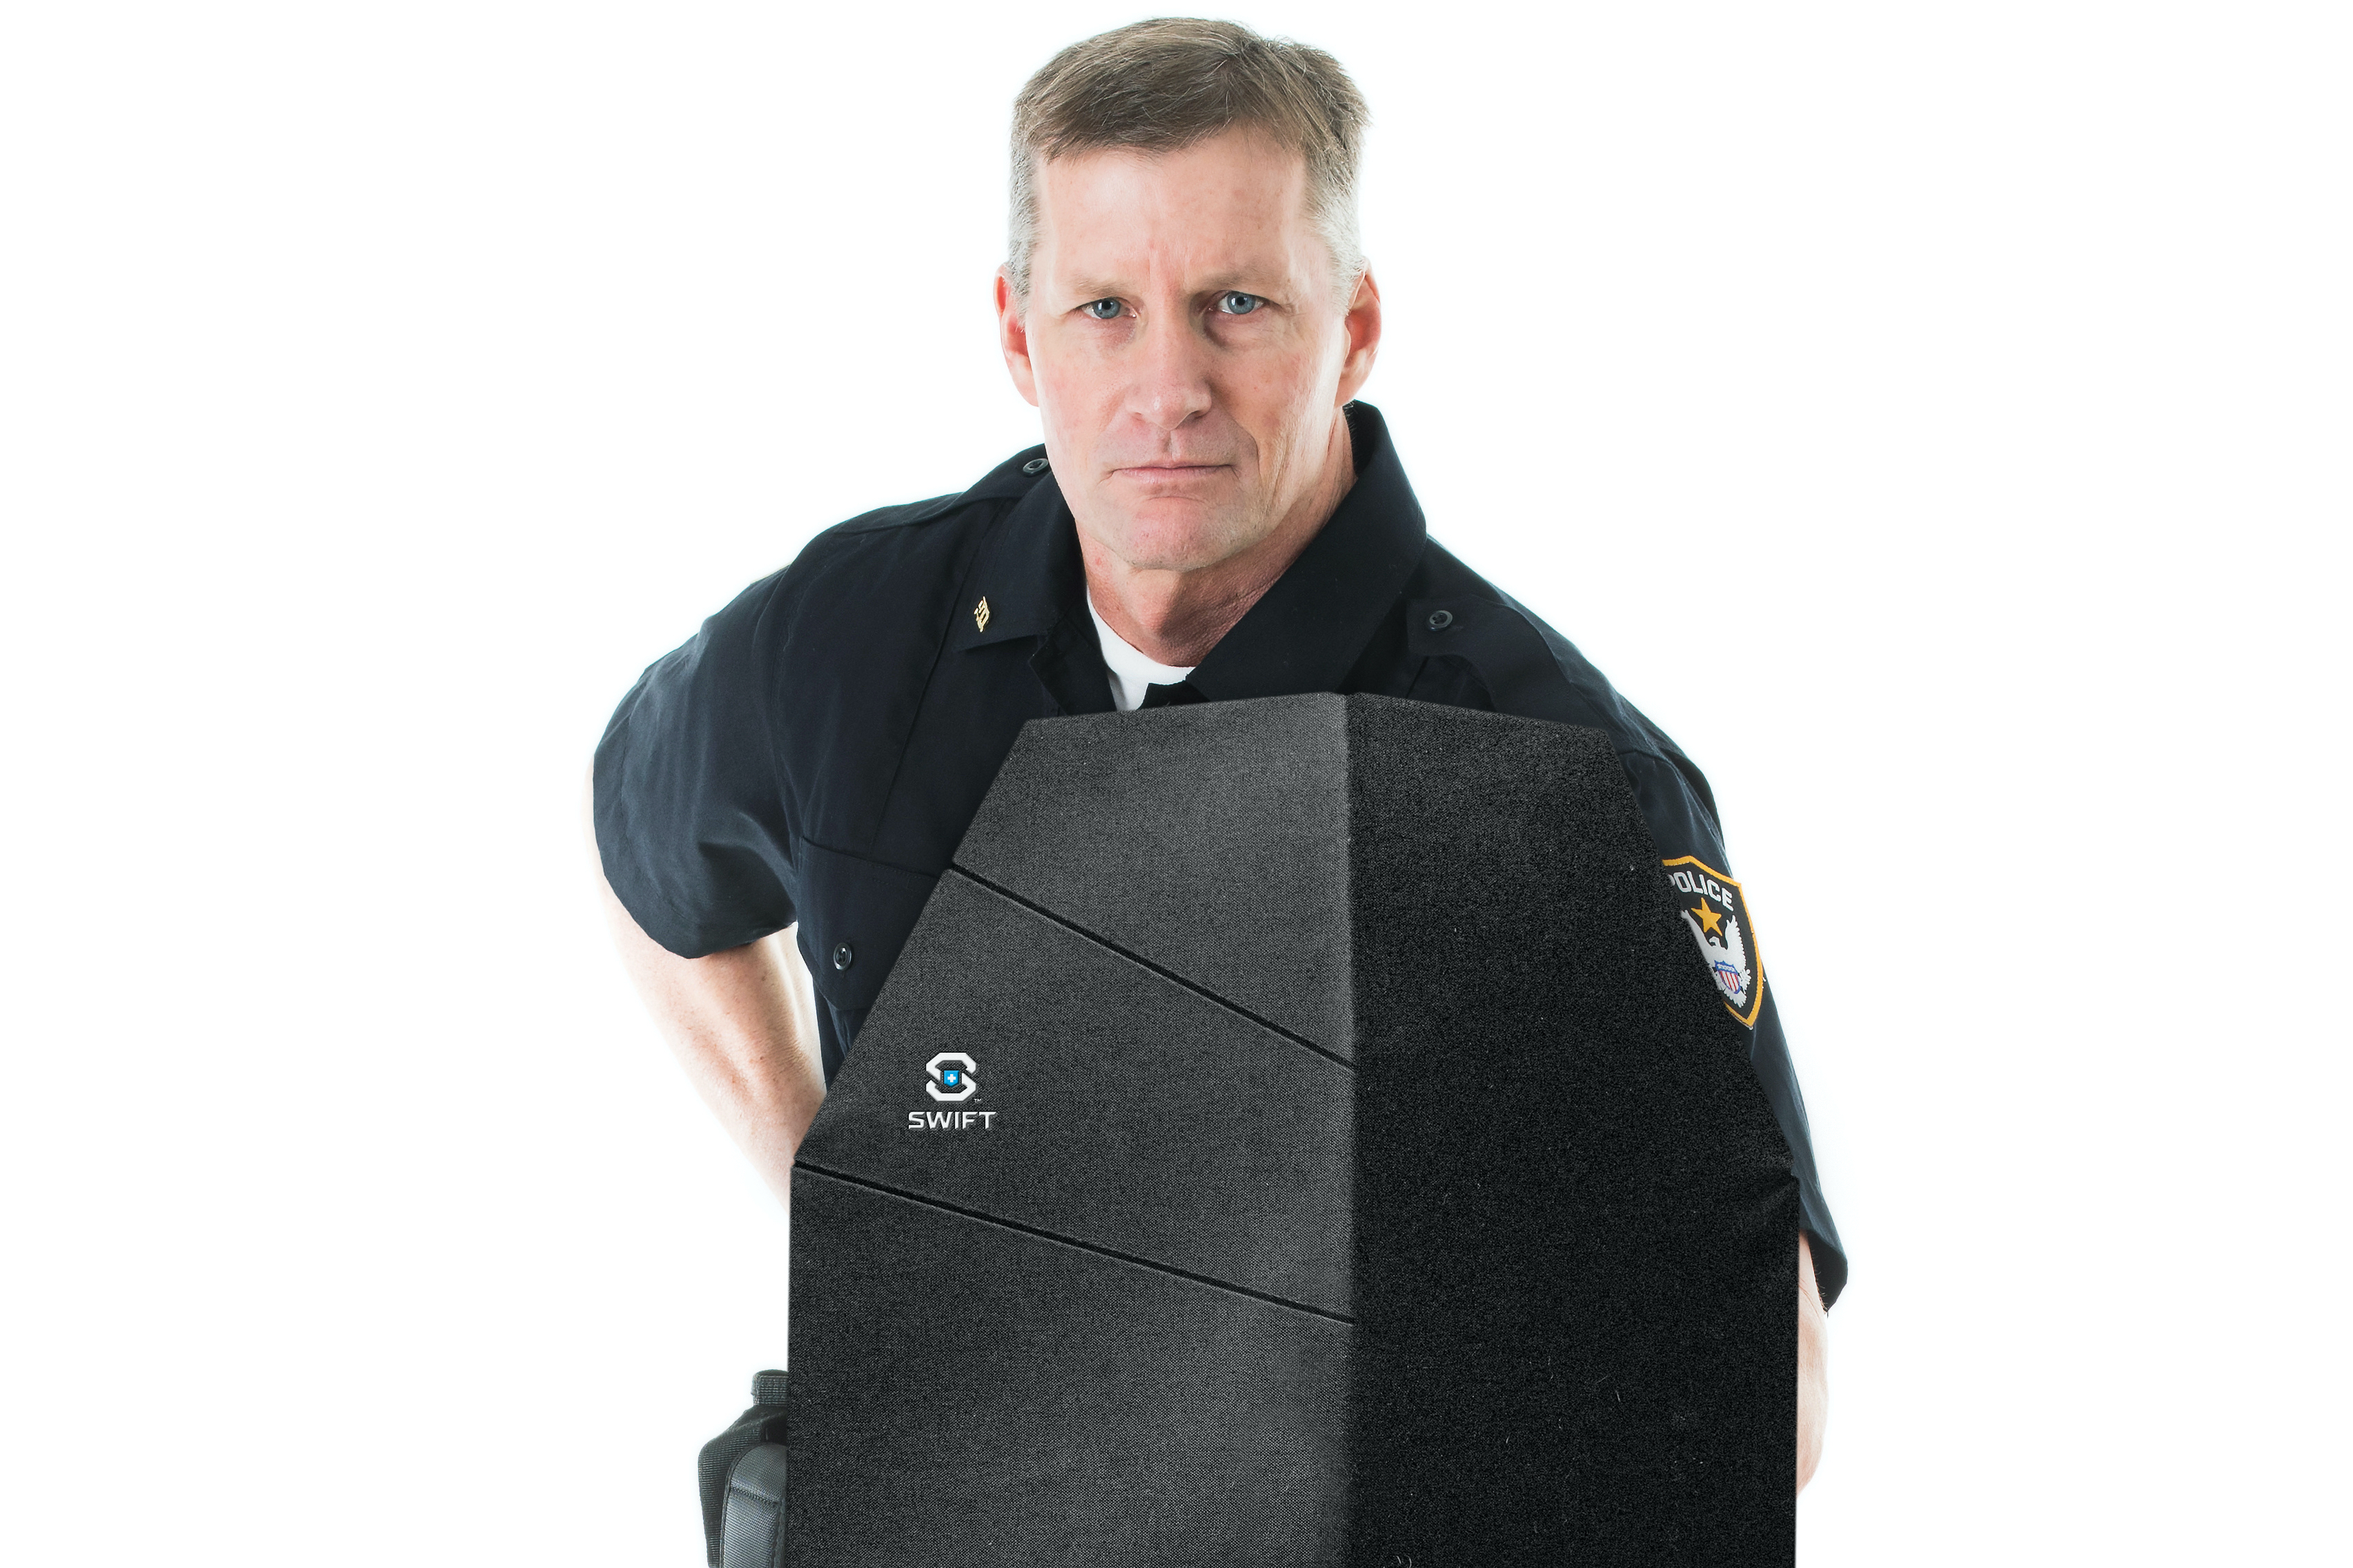 Origami-inspired ballistic shield now available to police forces